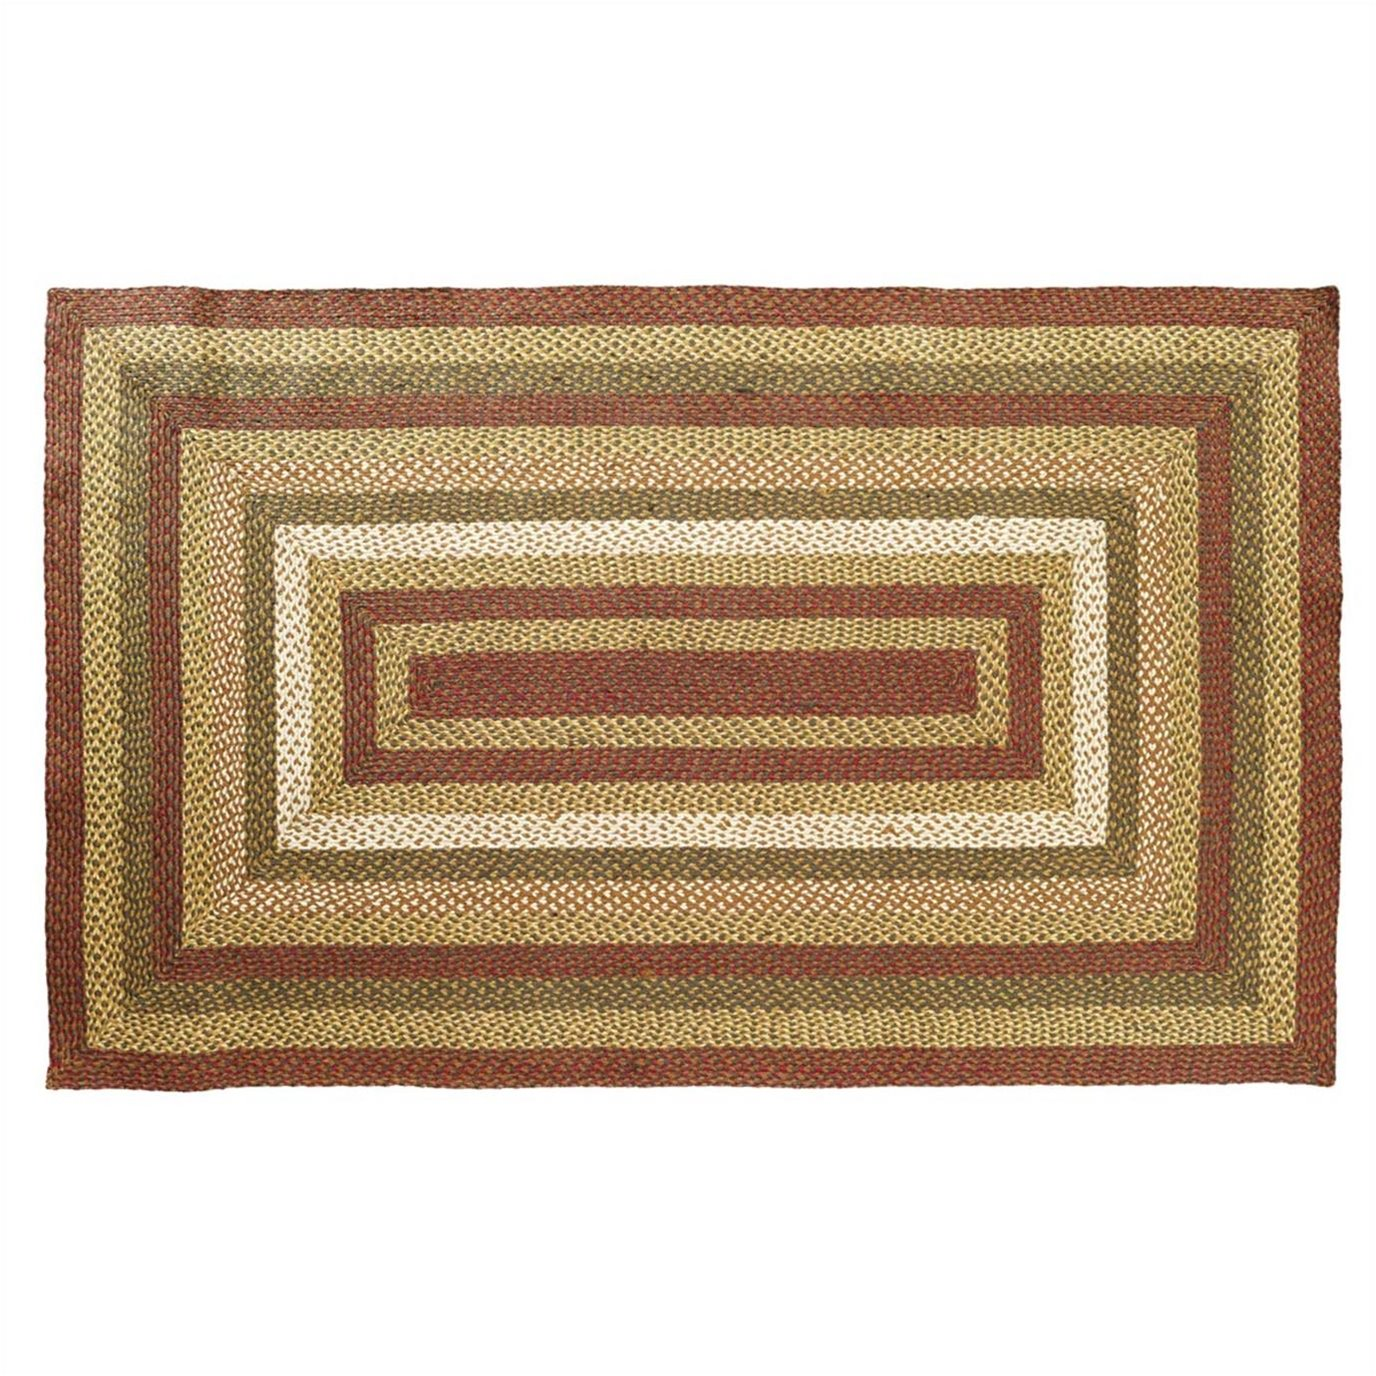 Tea Cabin Jute Rug Rectangular 60x96